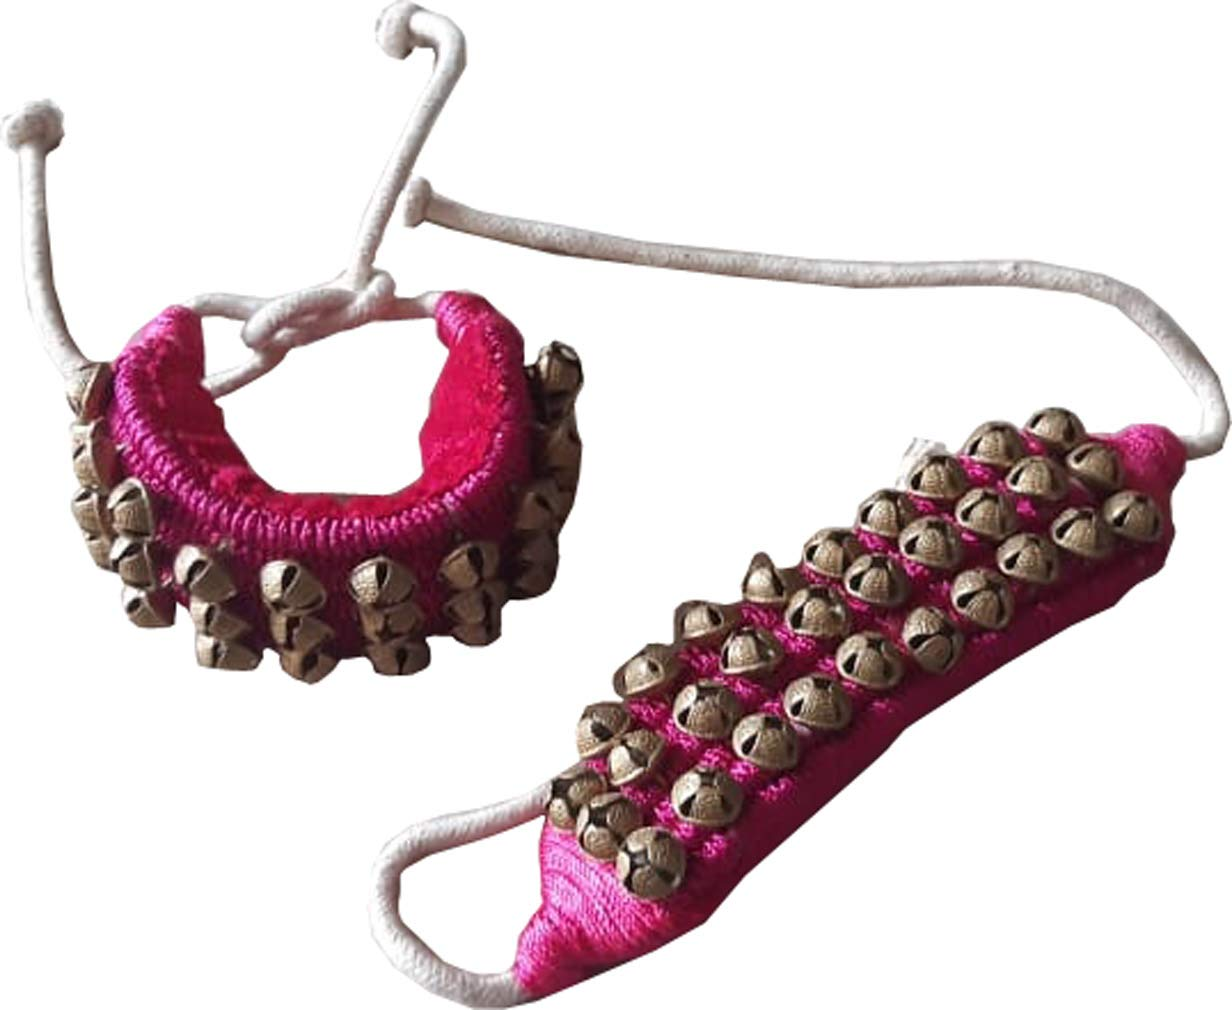 KVR Kathak Bharatnatayam indian traditional dance anklets brass bells ghungharoo pair for comfortable performance (3 row of bell, Fusia) by KVR